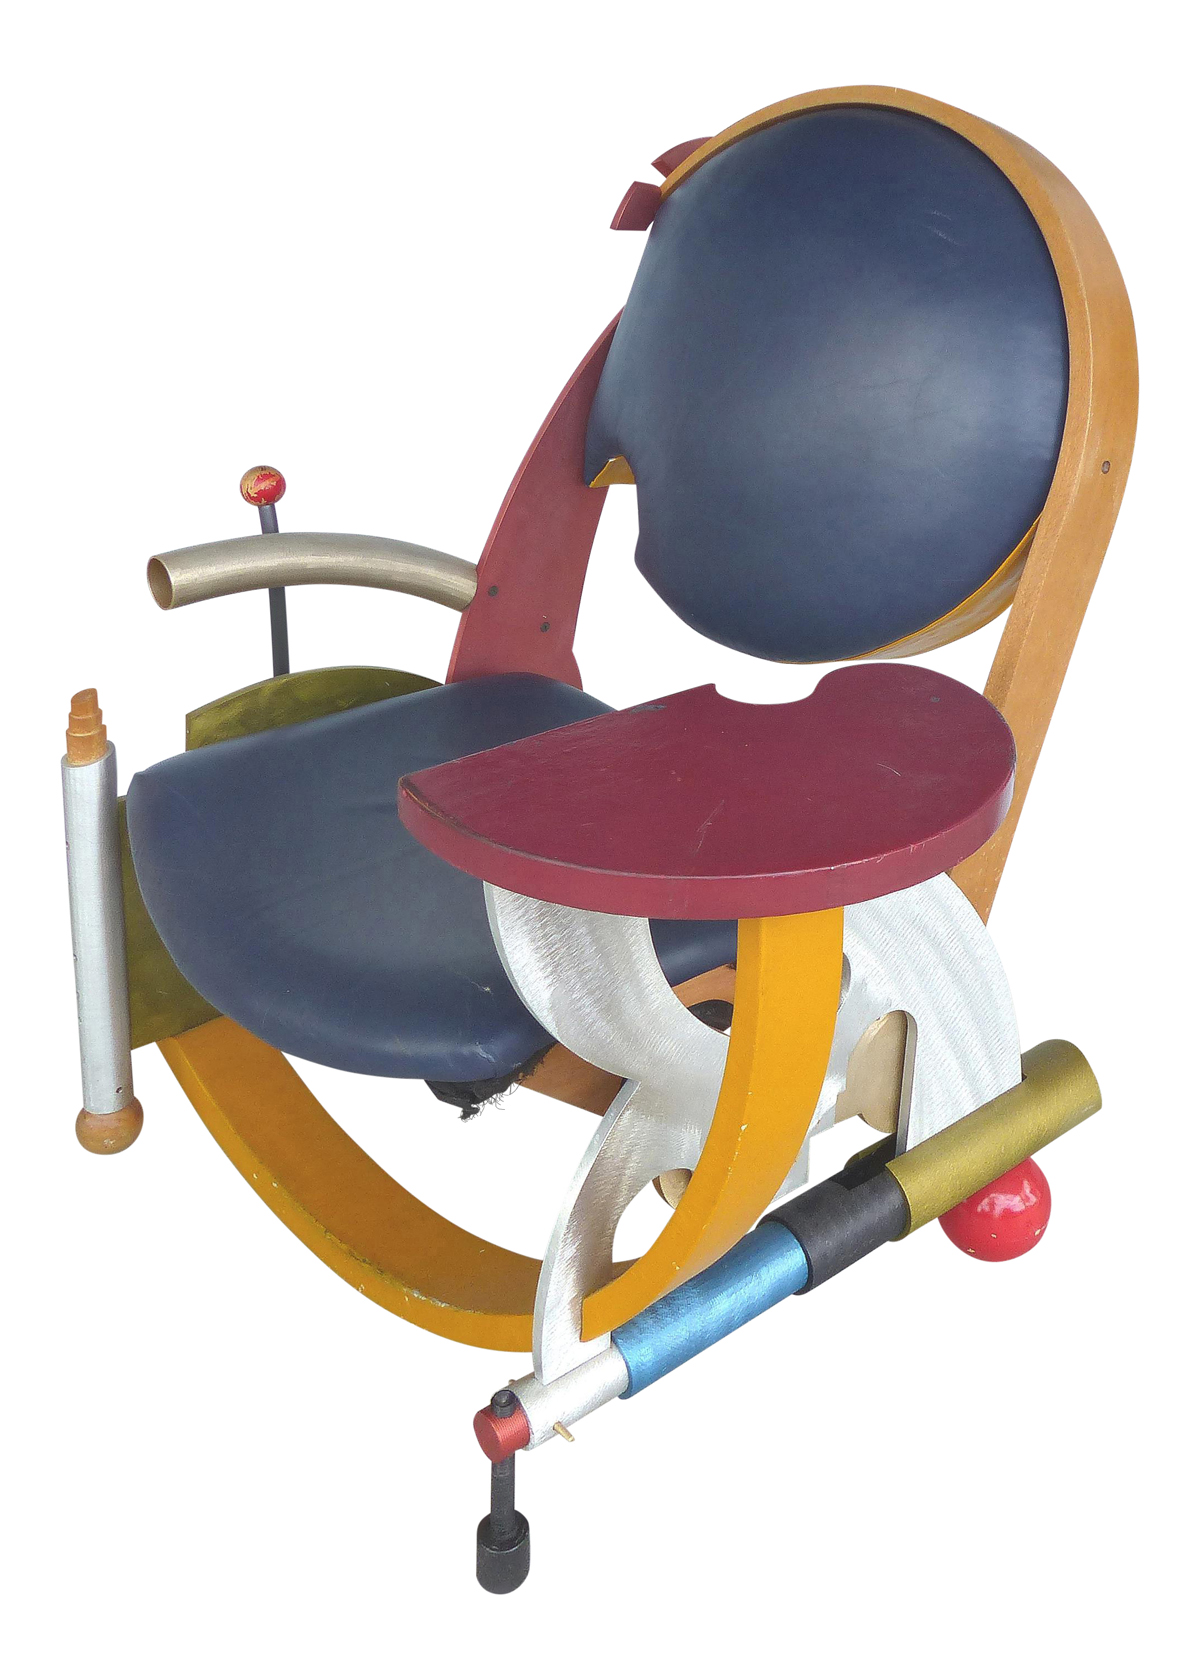 Post Modern -Howards Chair- By Jay Stanger 1989